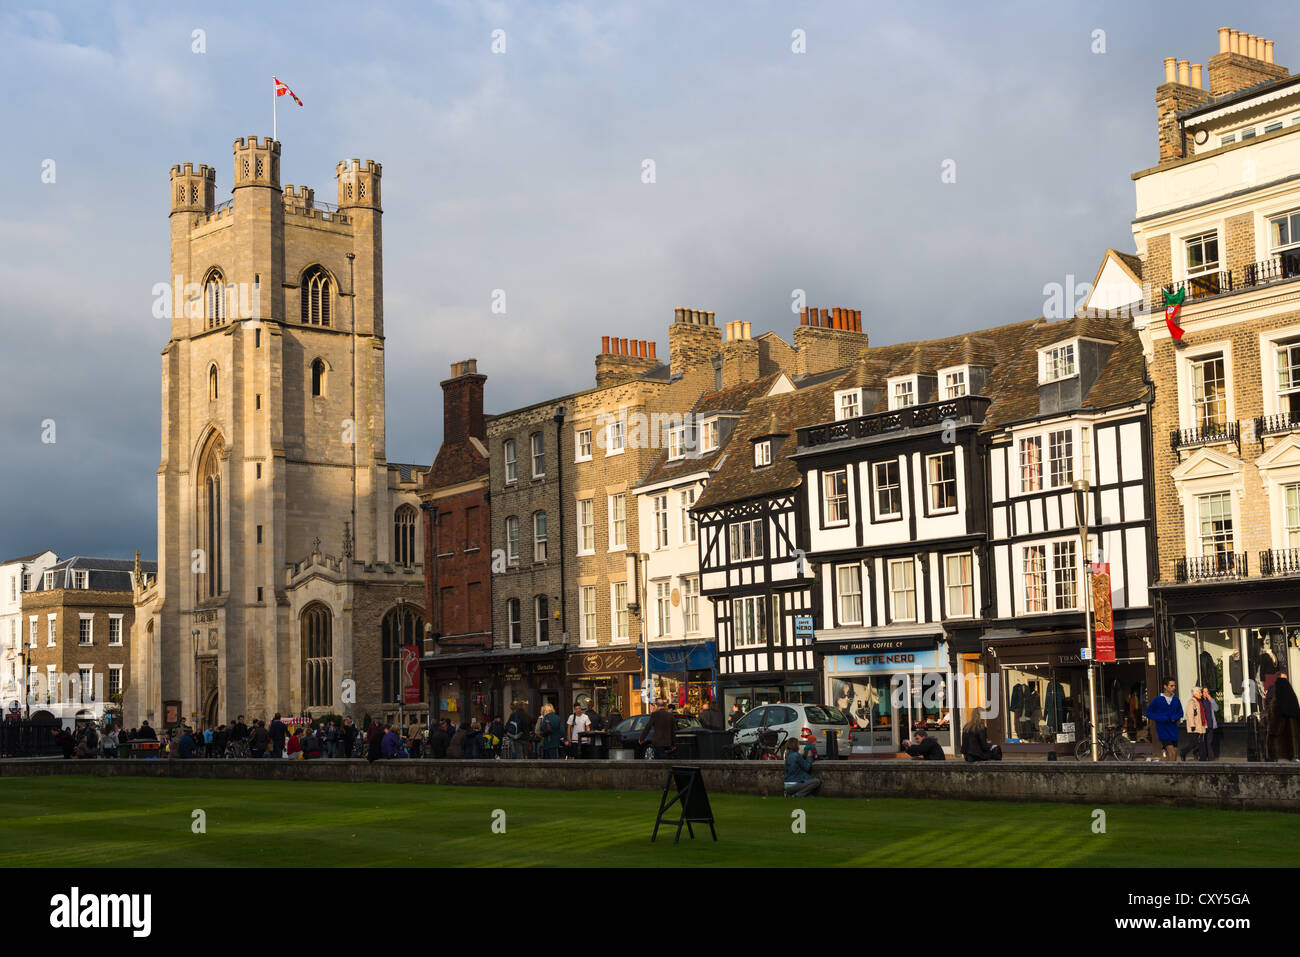 Kings Parade and Great St Marys Church seen from Kings College, Cambridge, England, UK - Stock Image